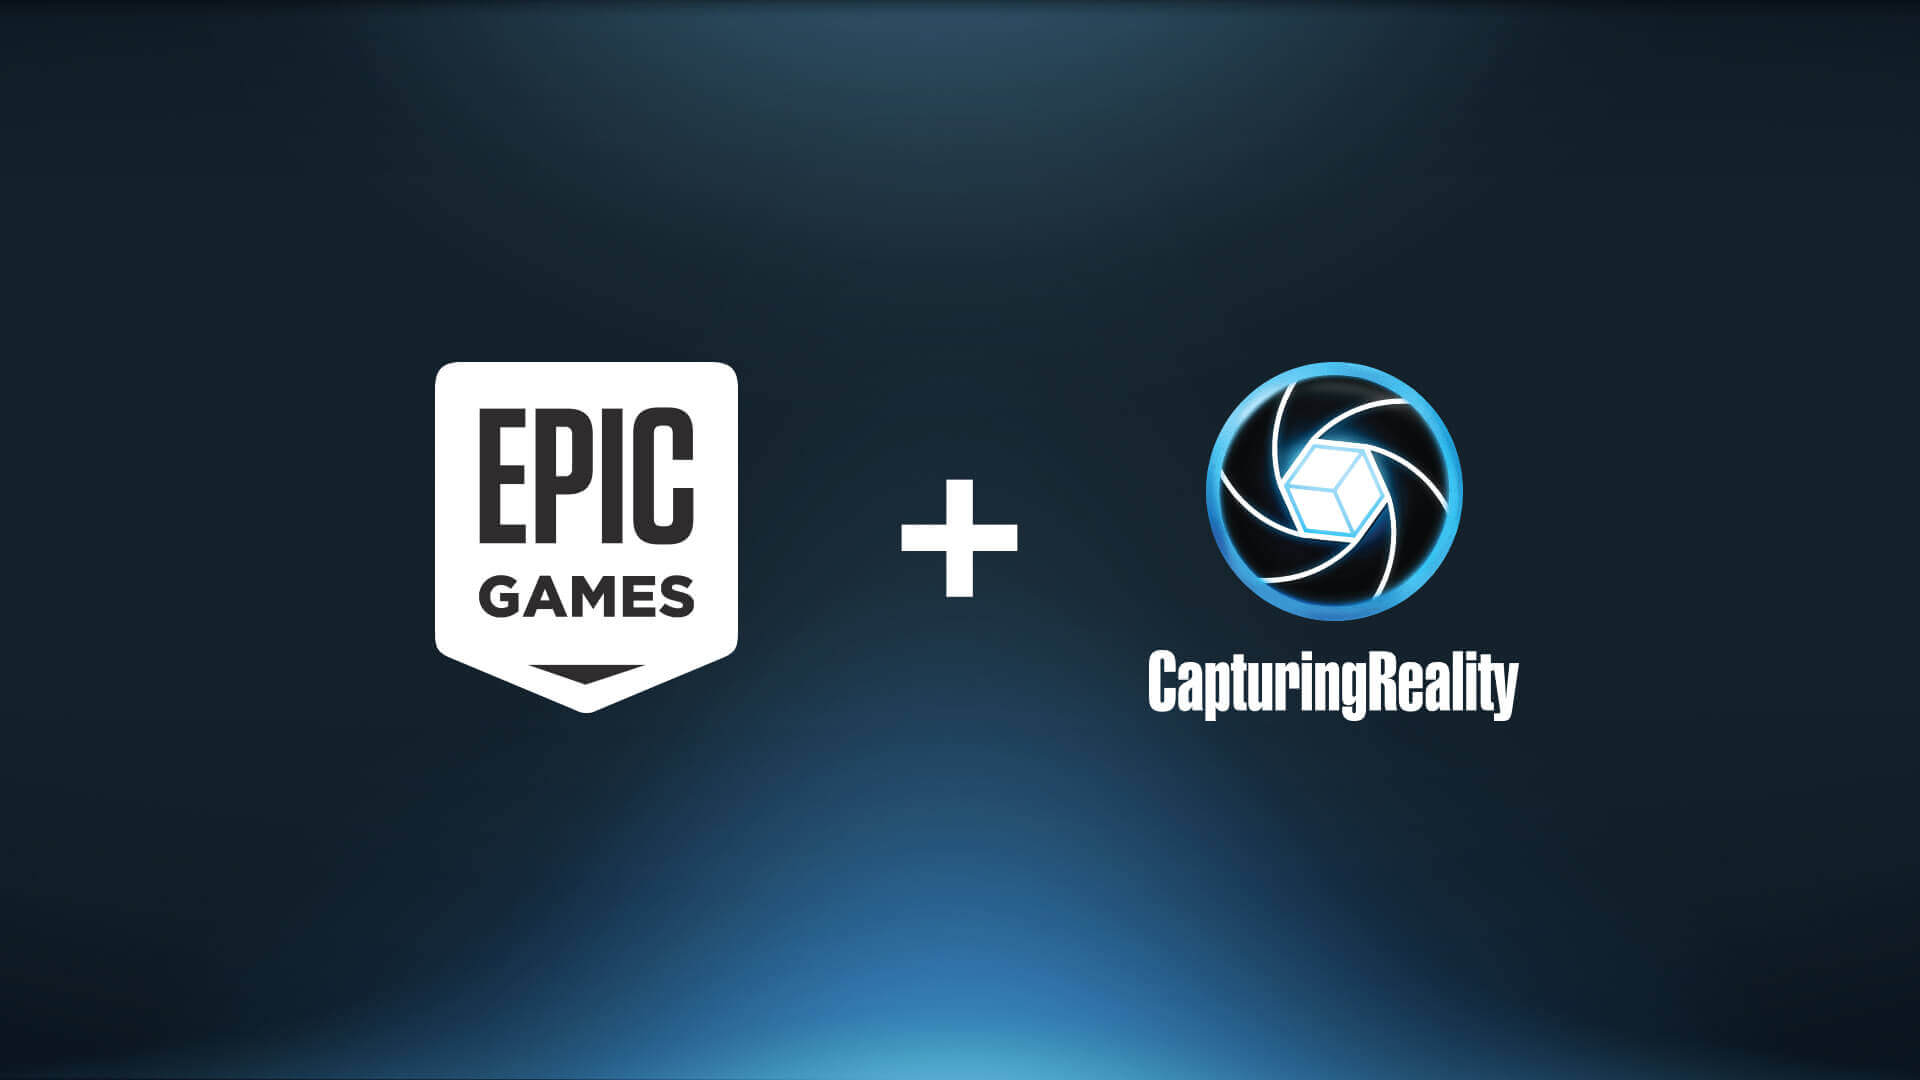 Epic Games Acquires Capturing Reality